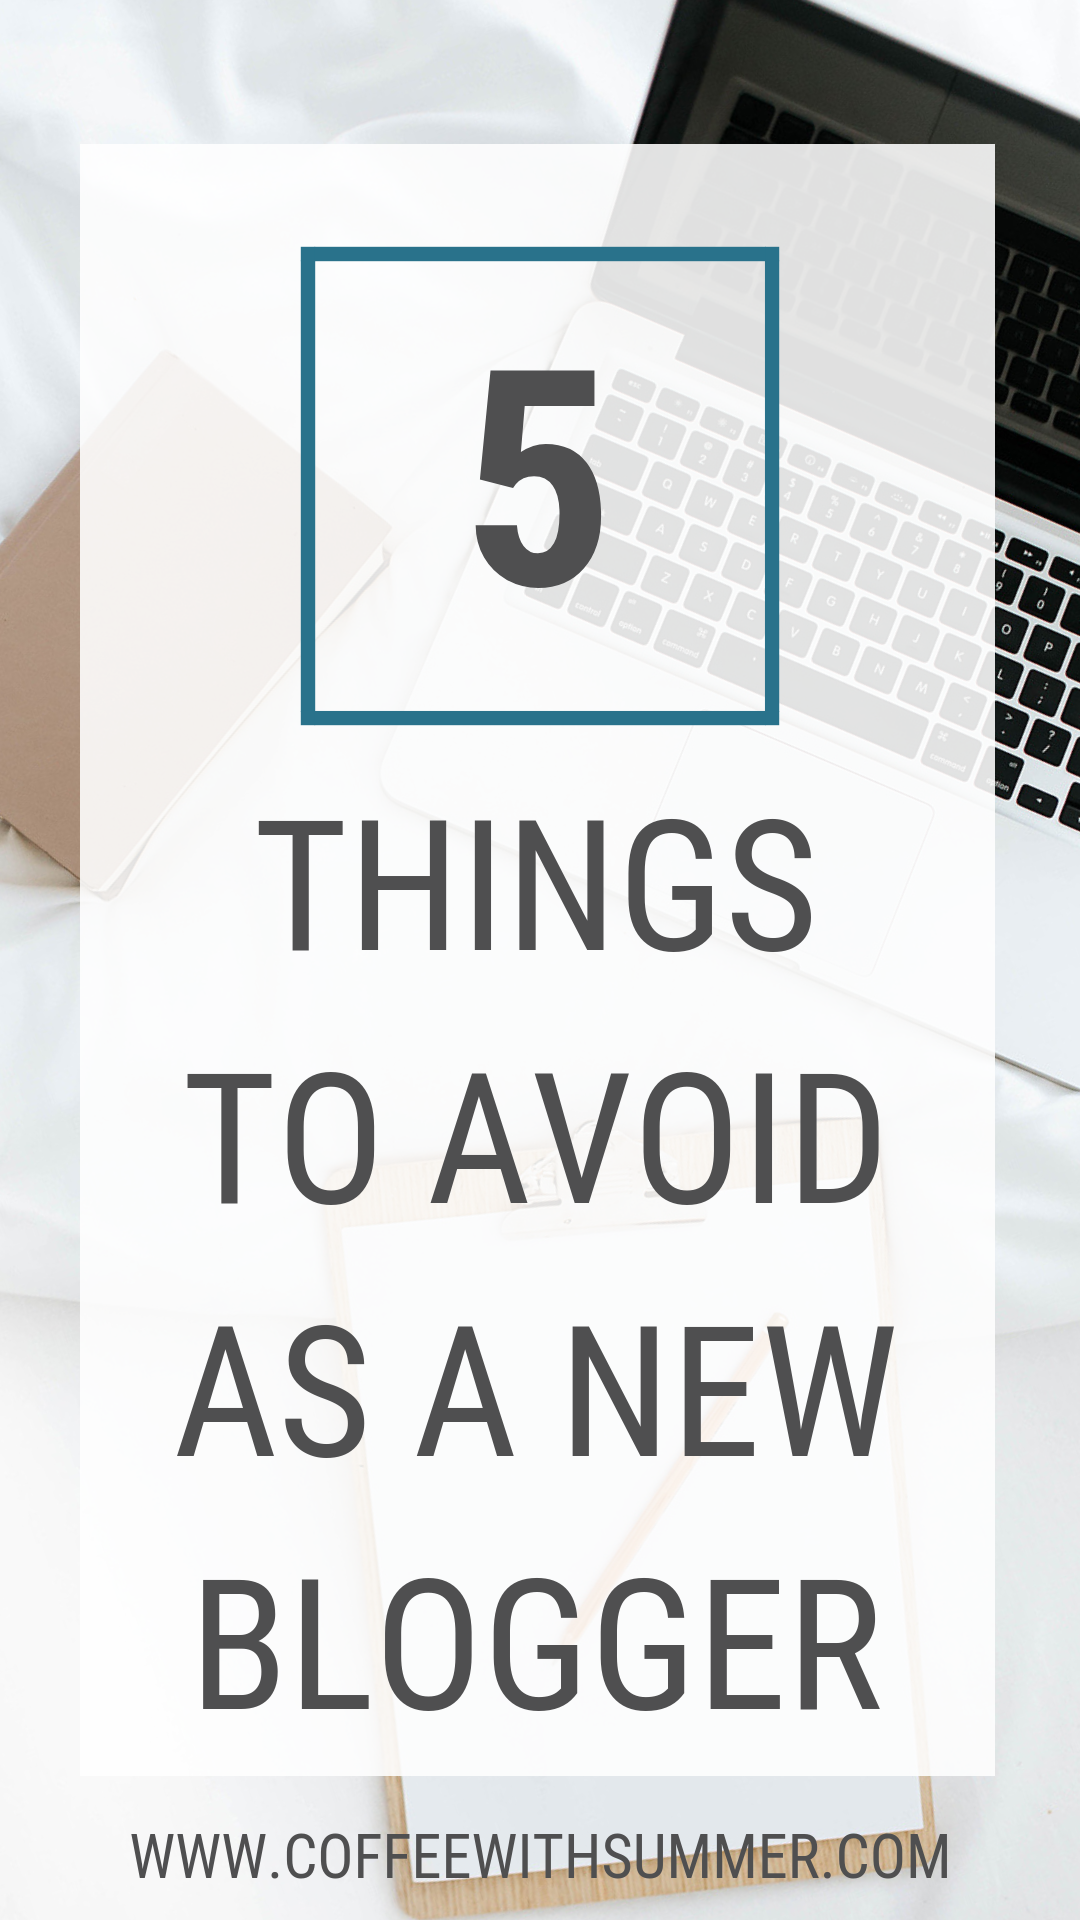 5 Things To Avoid As A New Blogger